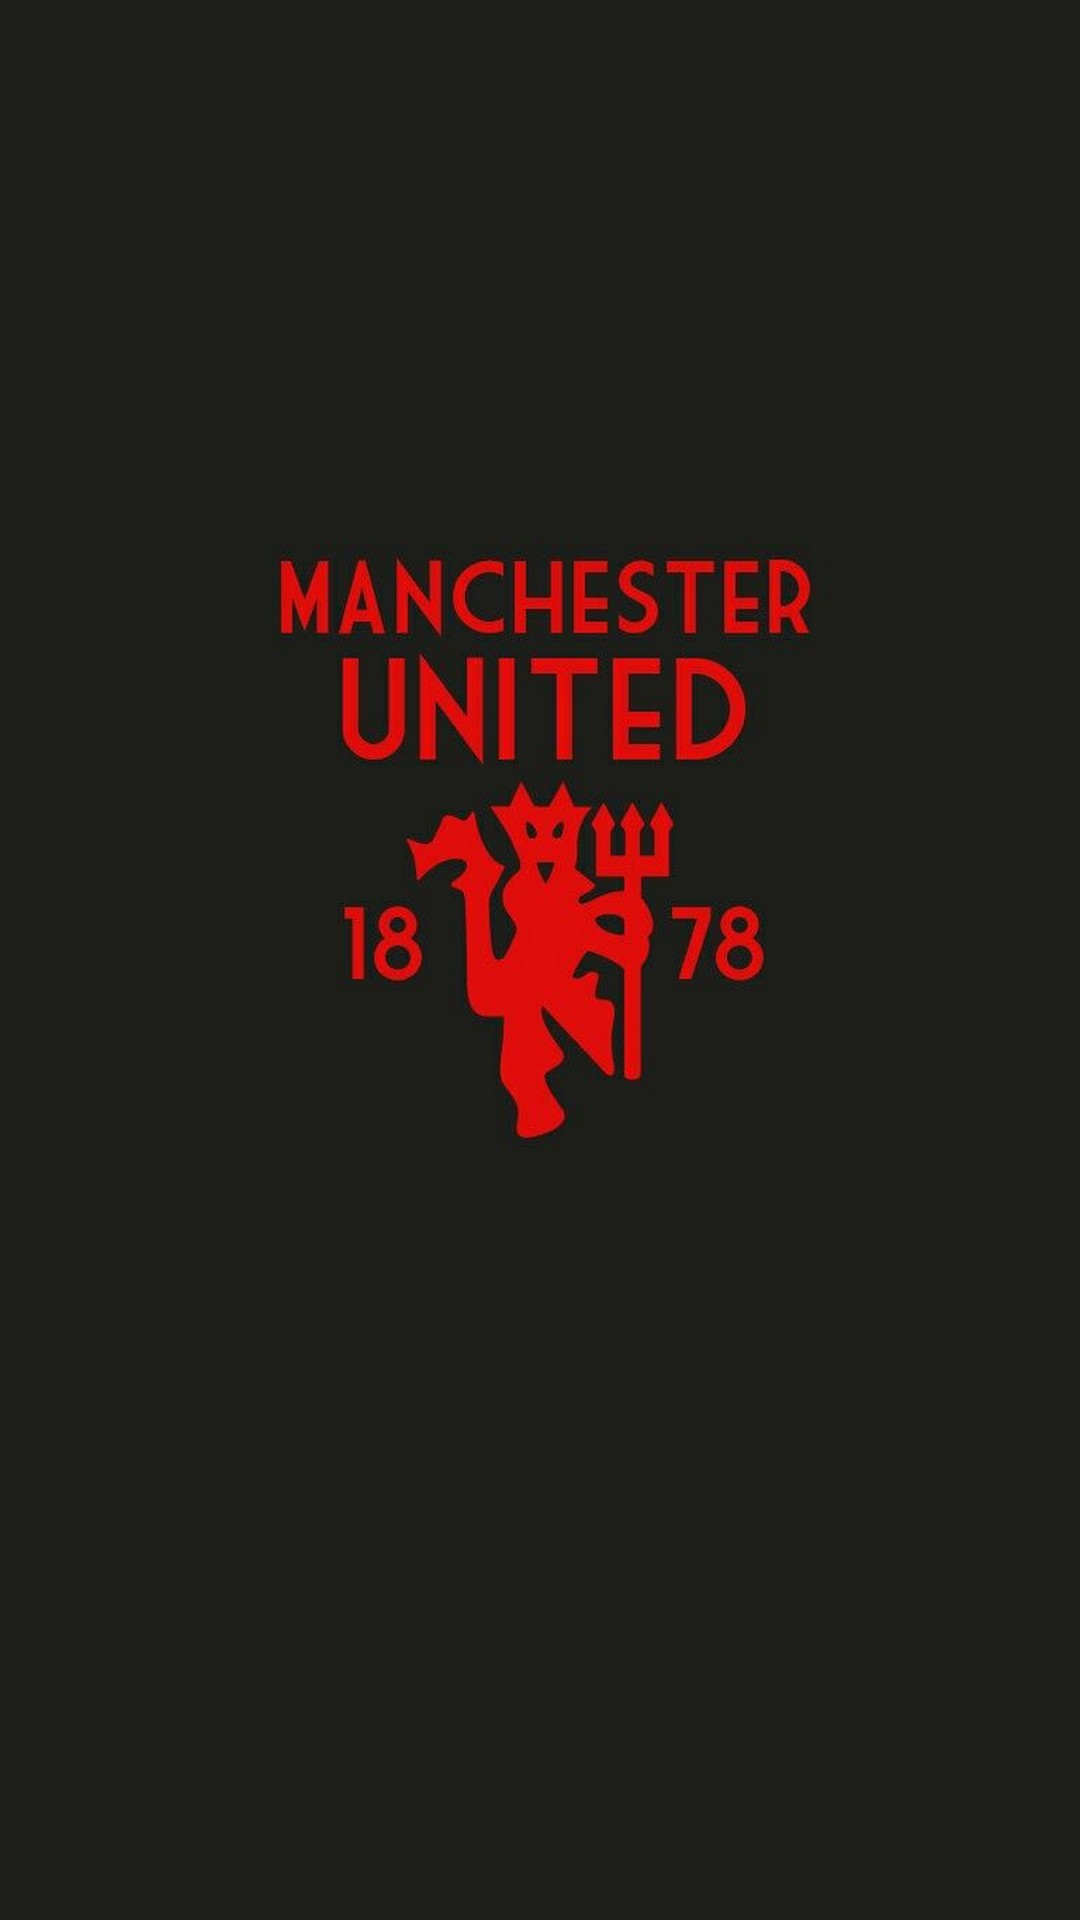 Wallpapers Manchester United Posted By Ryan Mercado